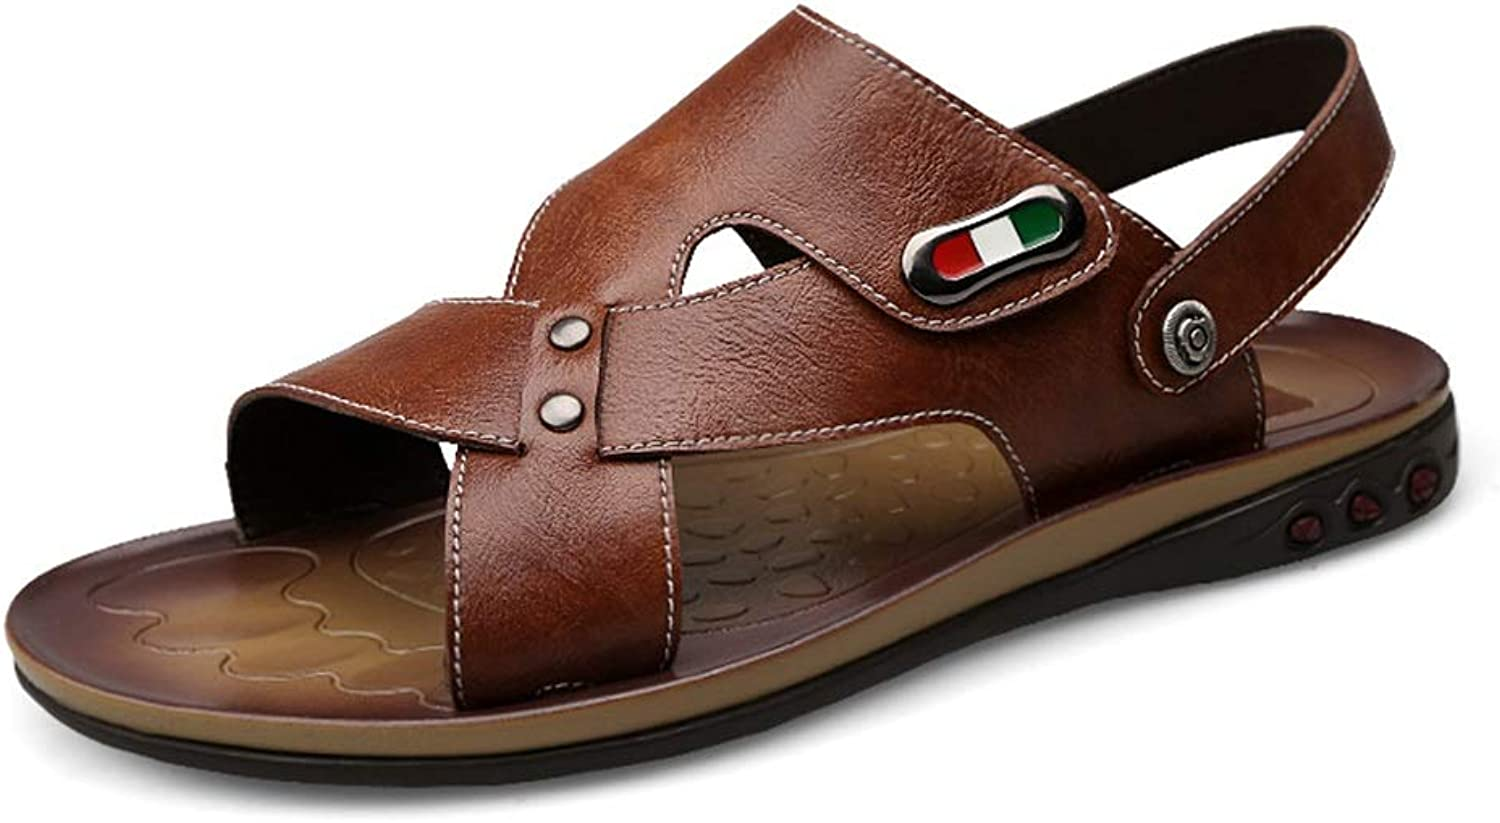 shoes Fashion Casual Beach Casual shoes Summer Sandals Flip-Flops Toe Ring Breathable Slippers Elastic Leather Upper shoes (color   Brown, Size   9 D(M) US)